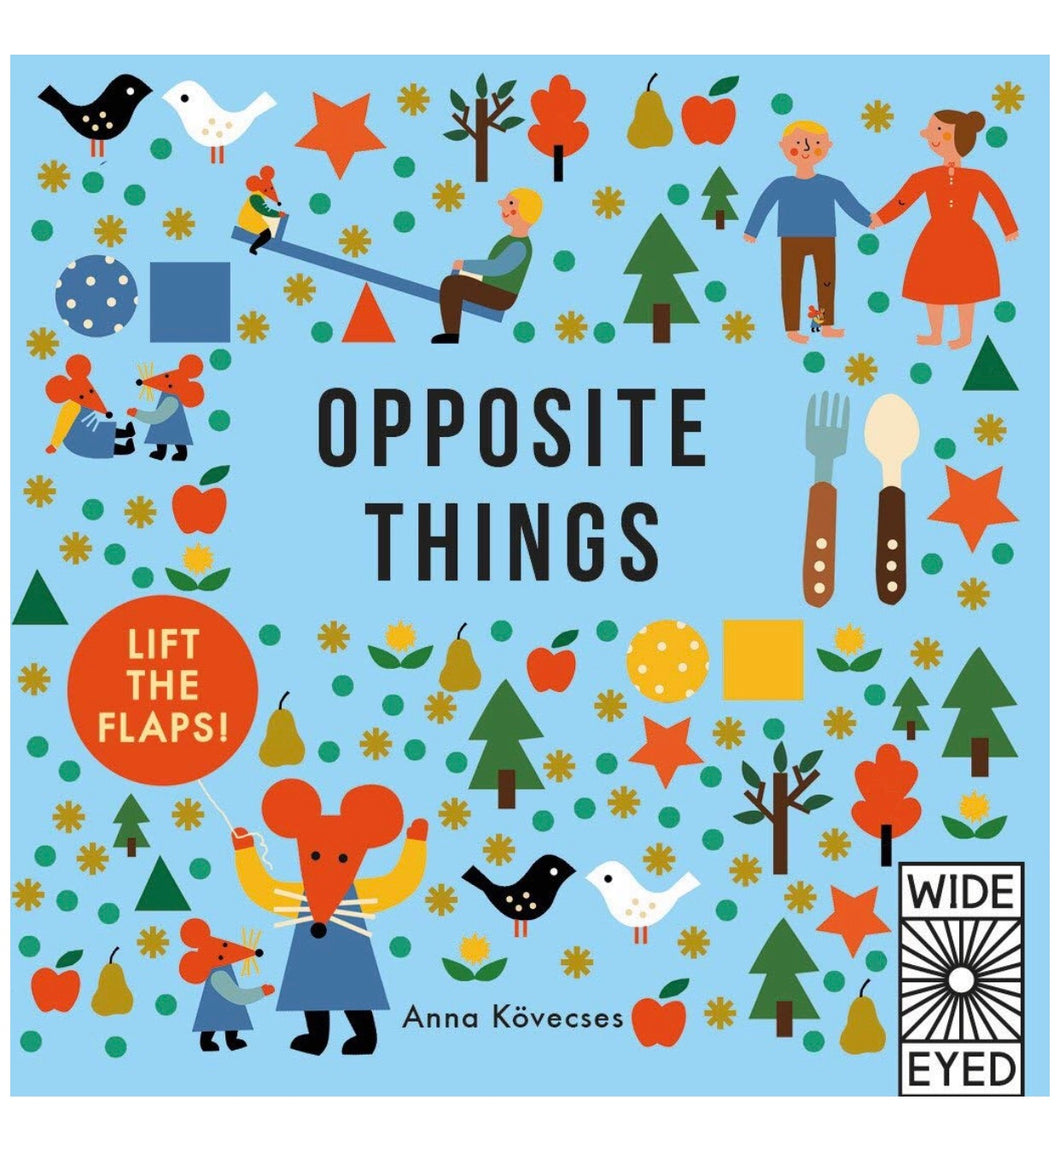 Opposite Things | Lift the flaps board book